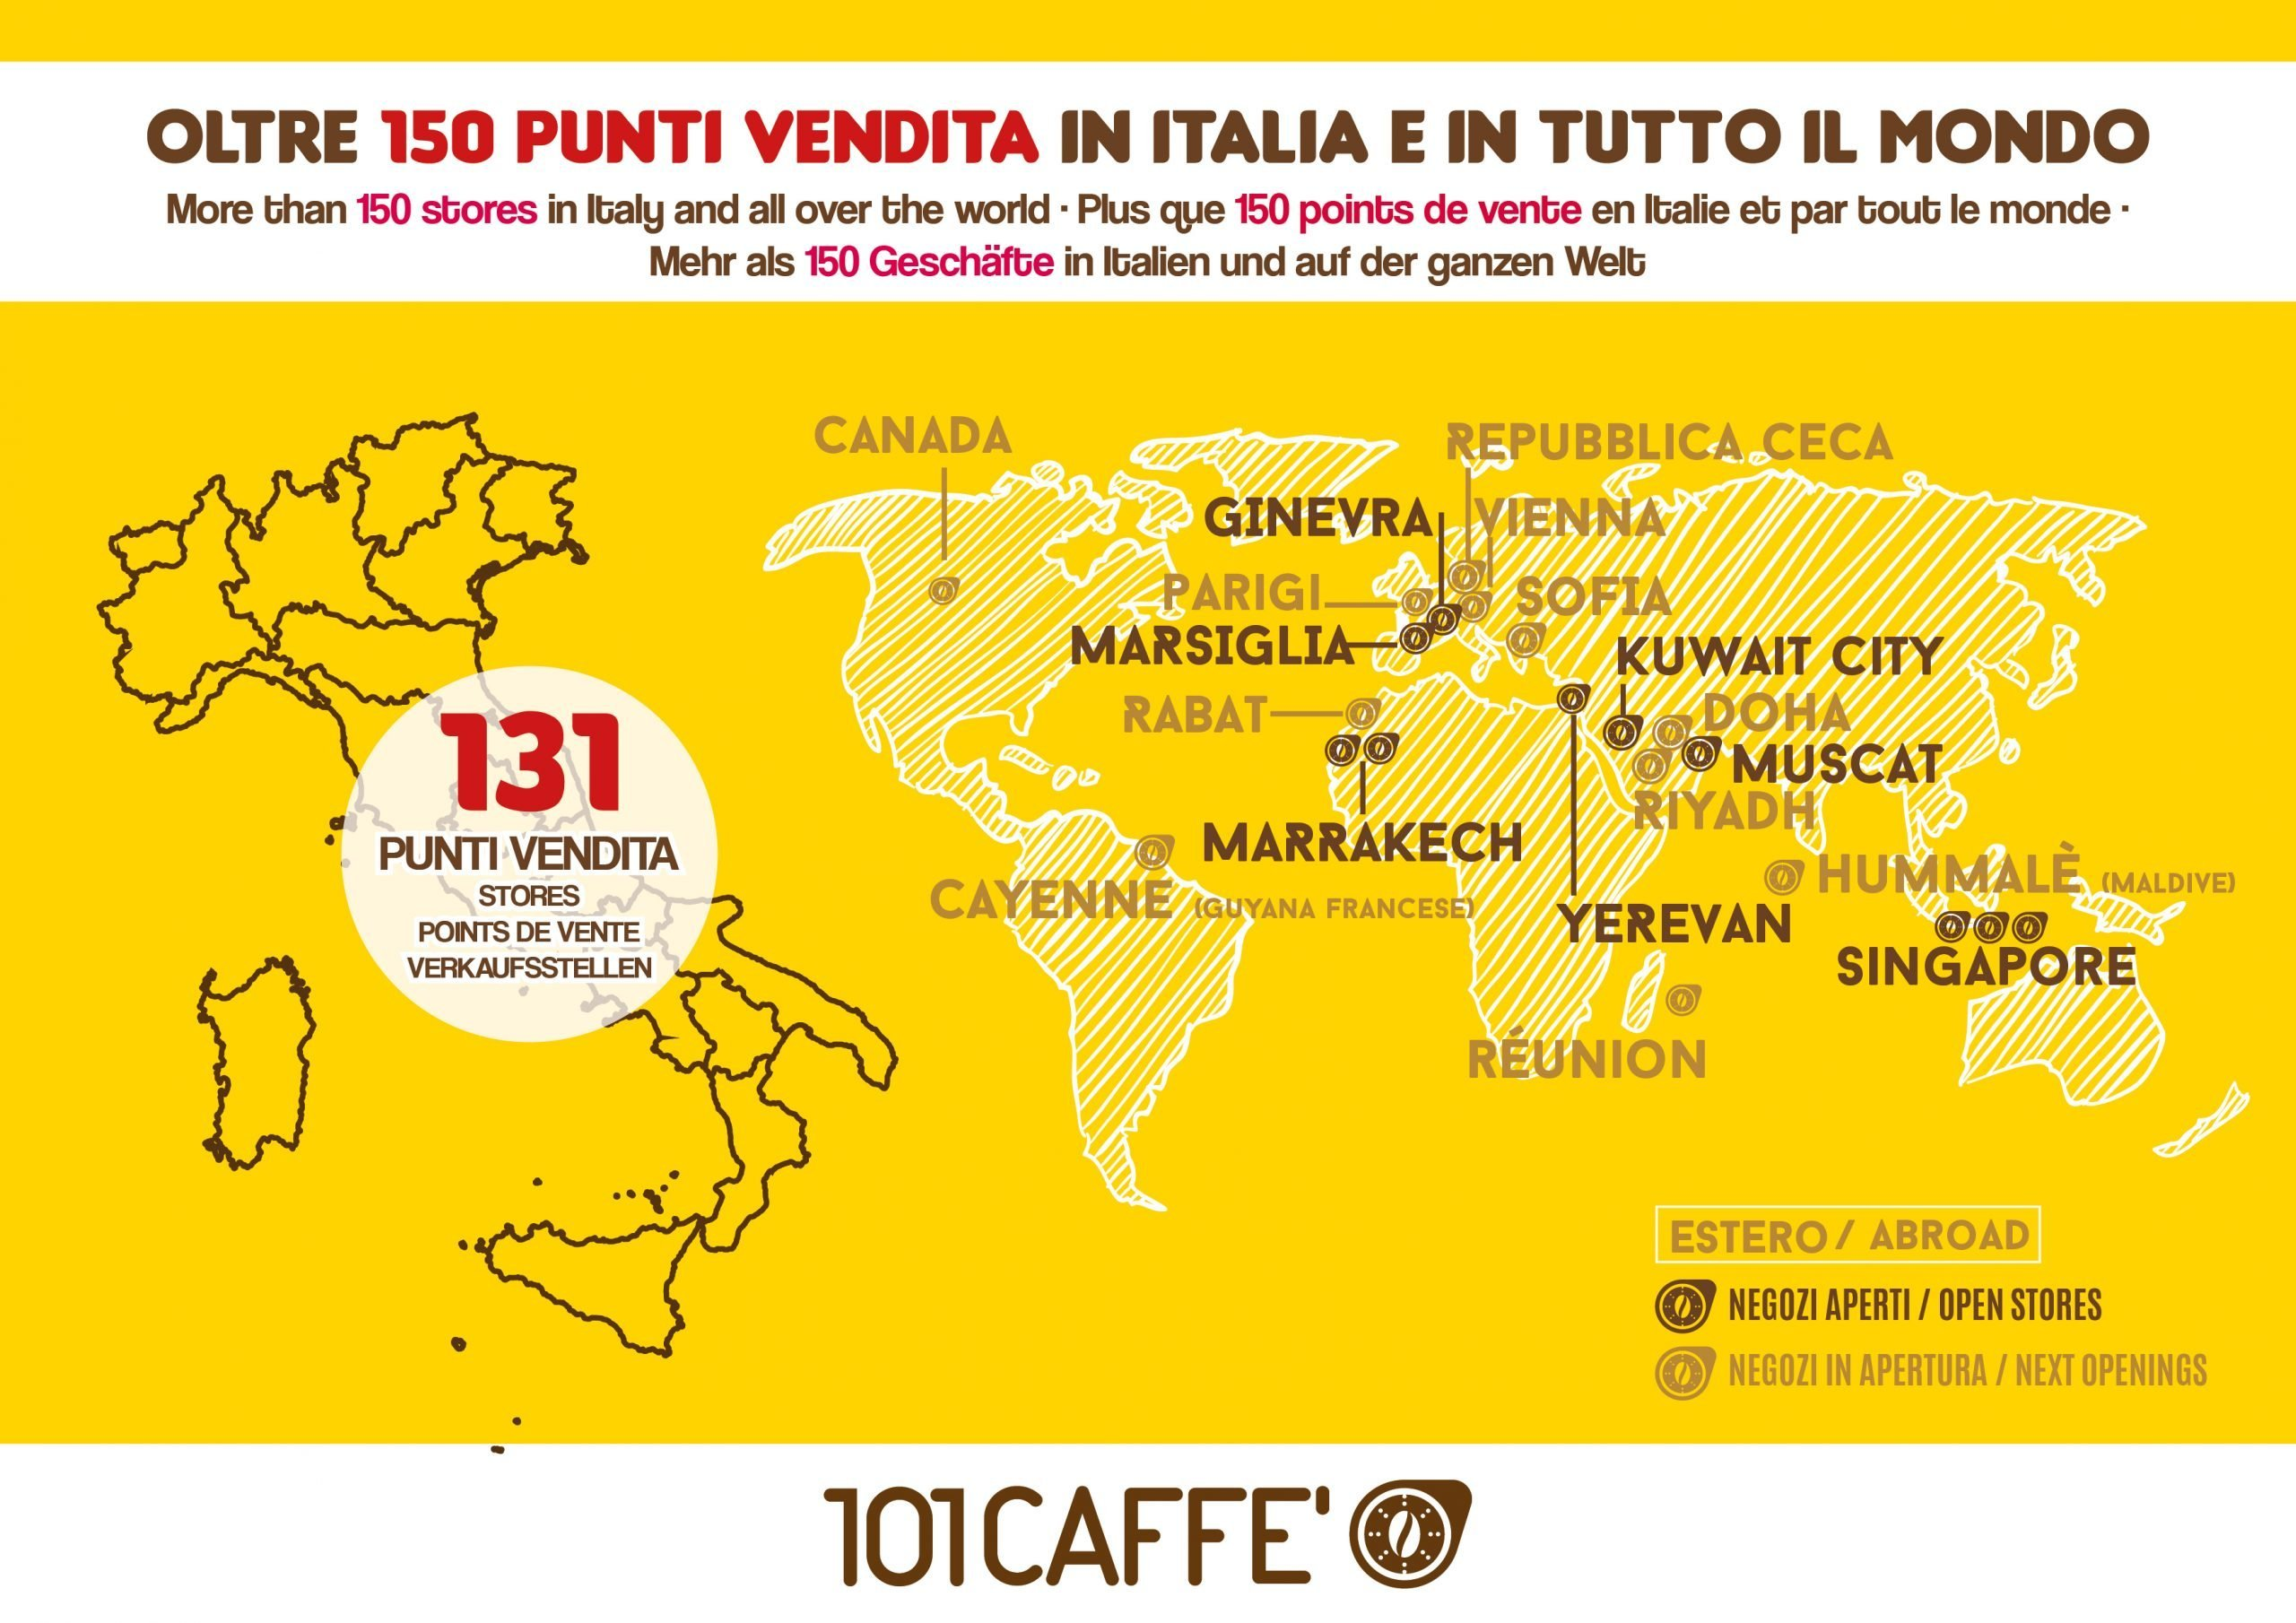 101 CAFFE 'the largest chain of stores in Franchising of coffee and drinks in pods and capsules